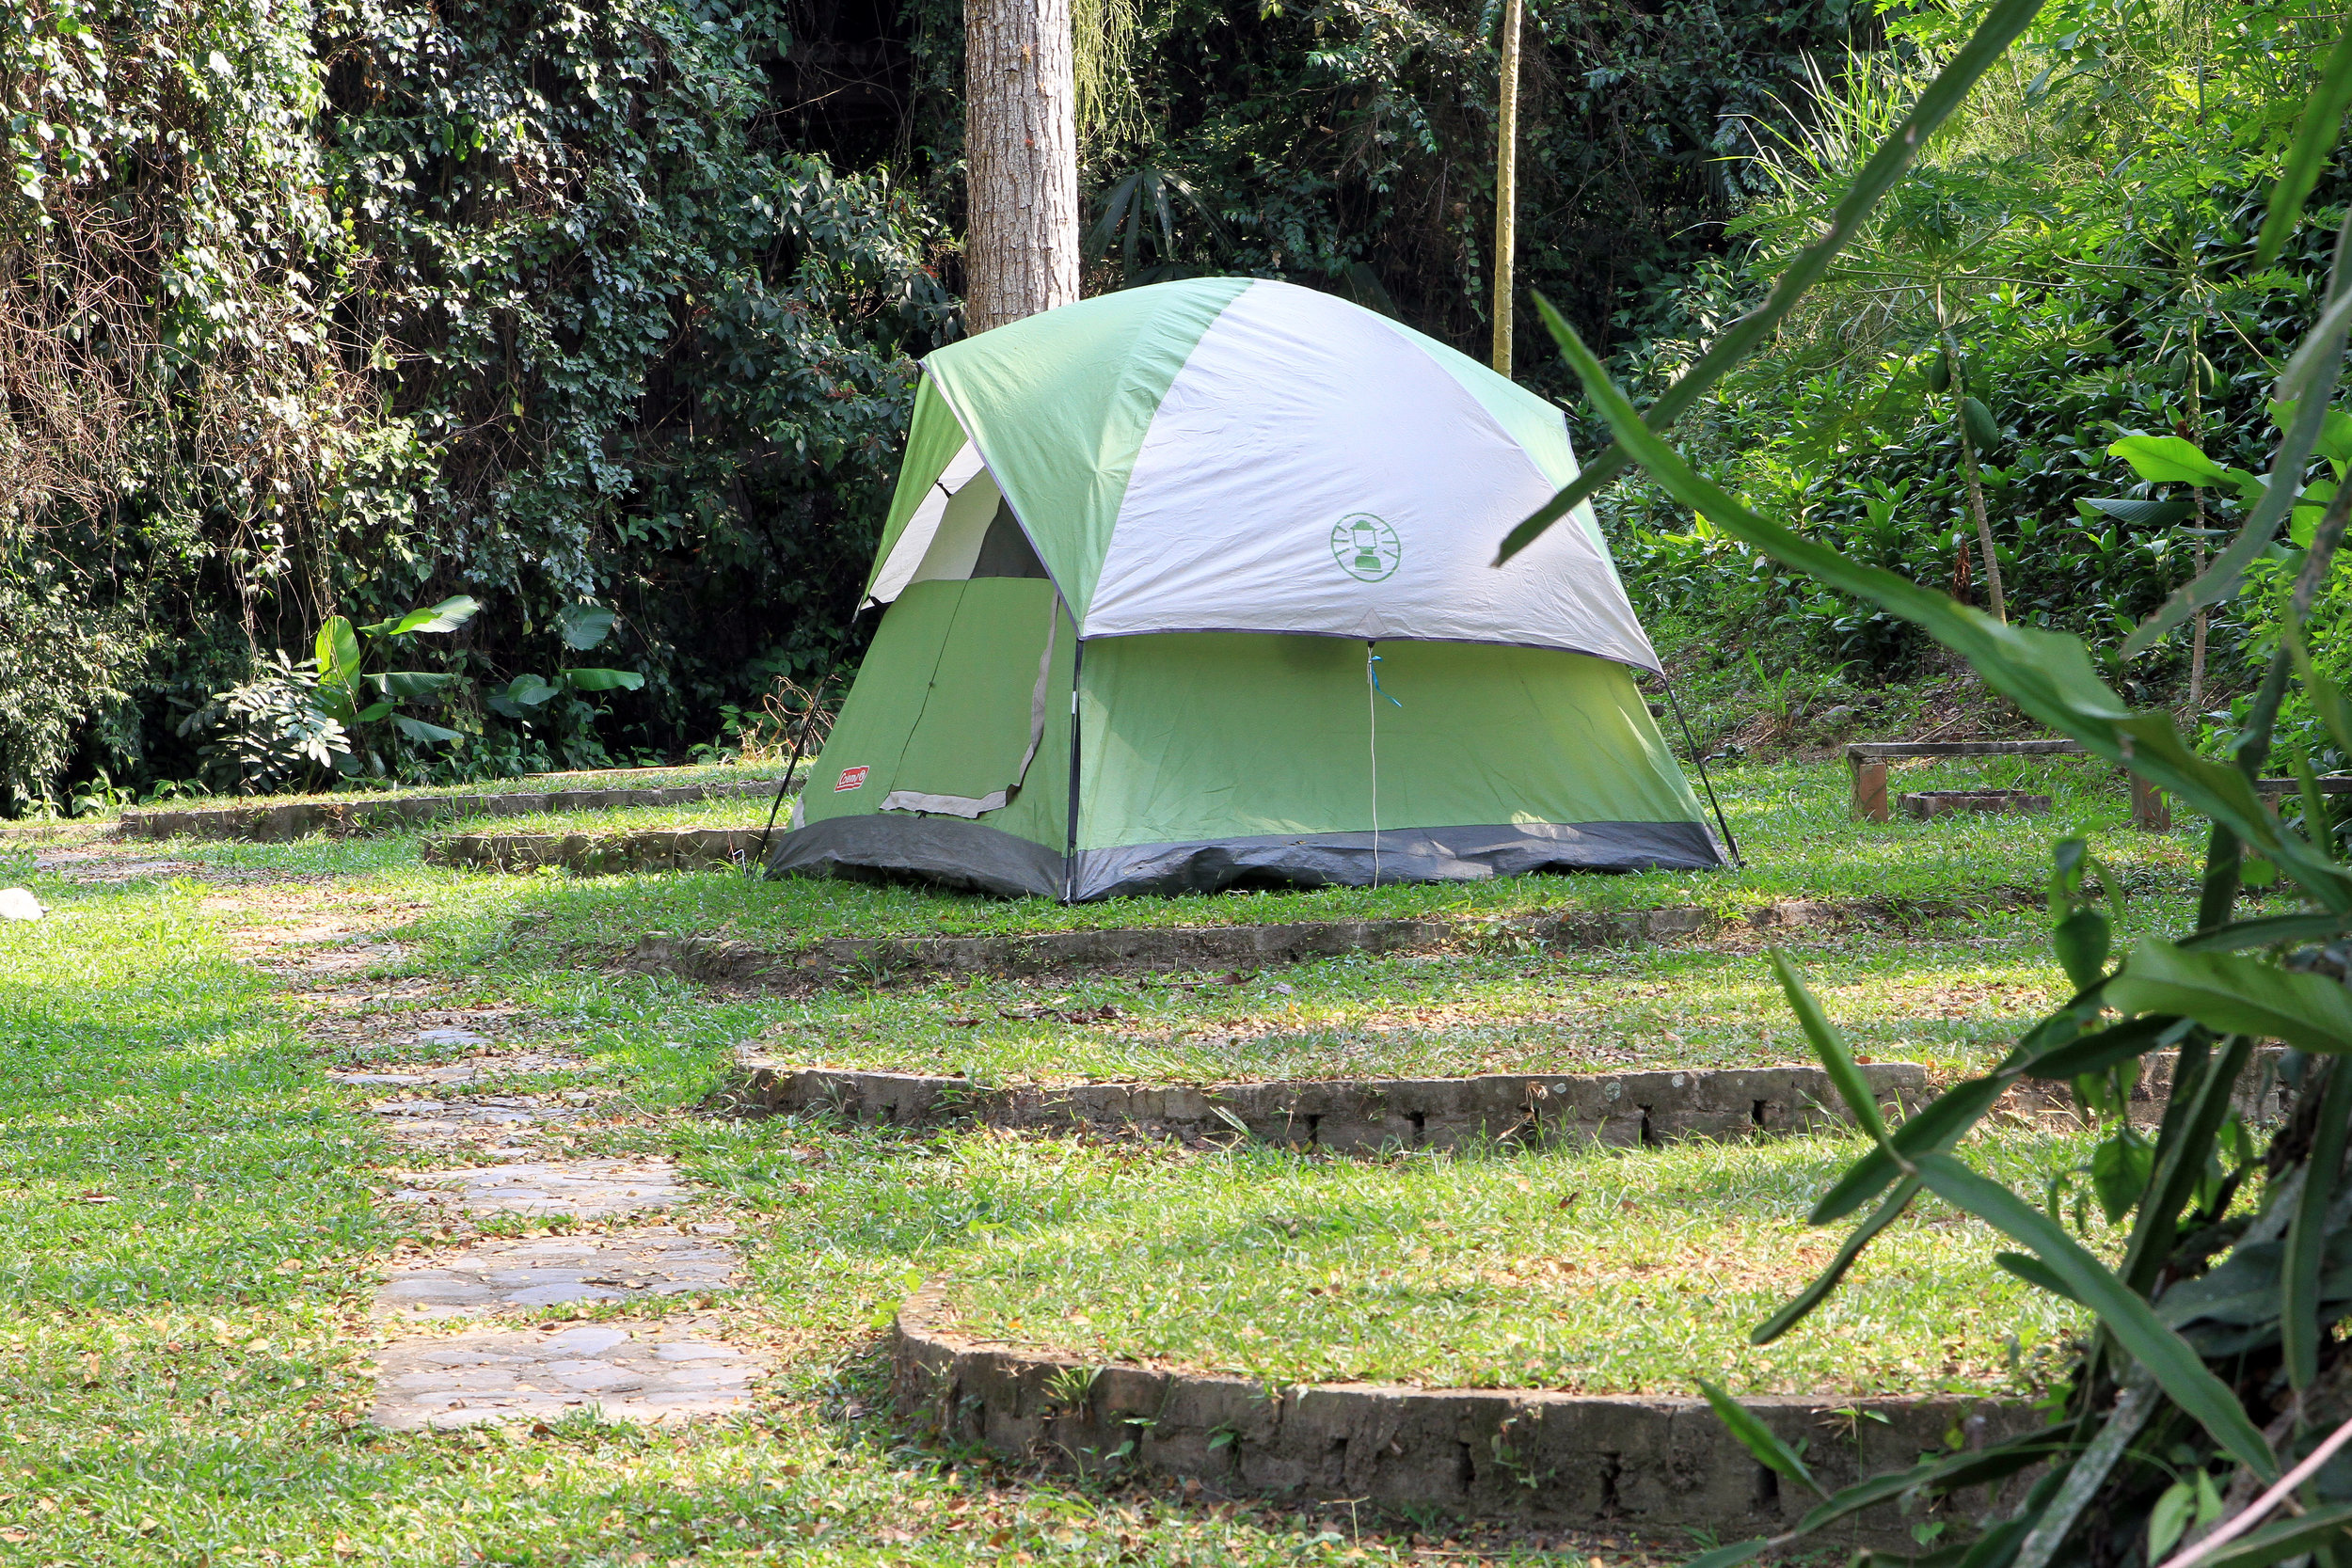 IMG_4507_camping_al _aire_libre.jpg